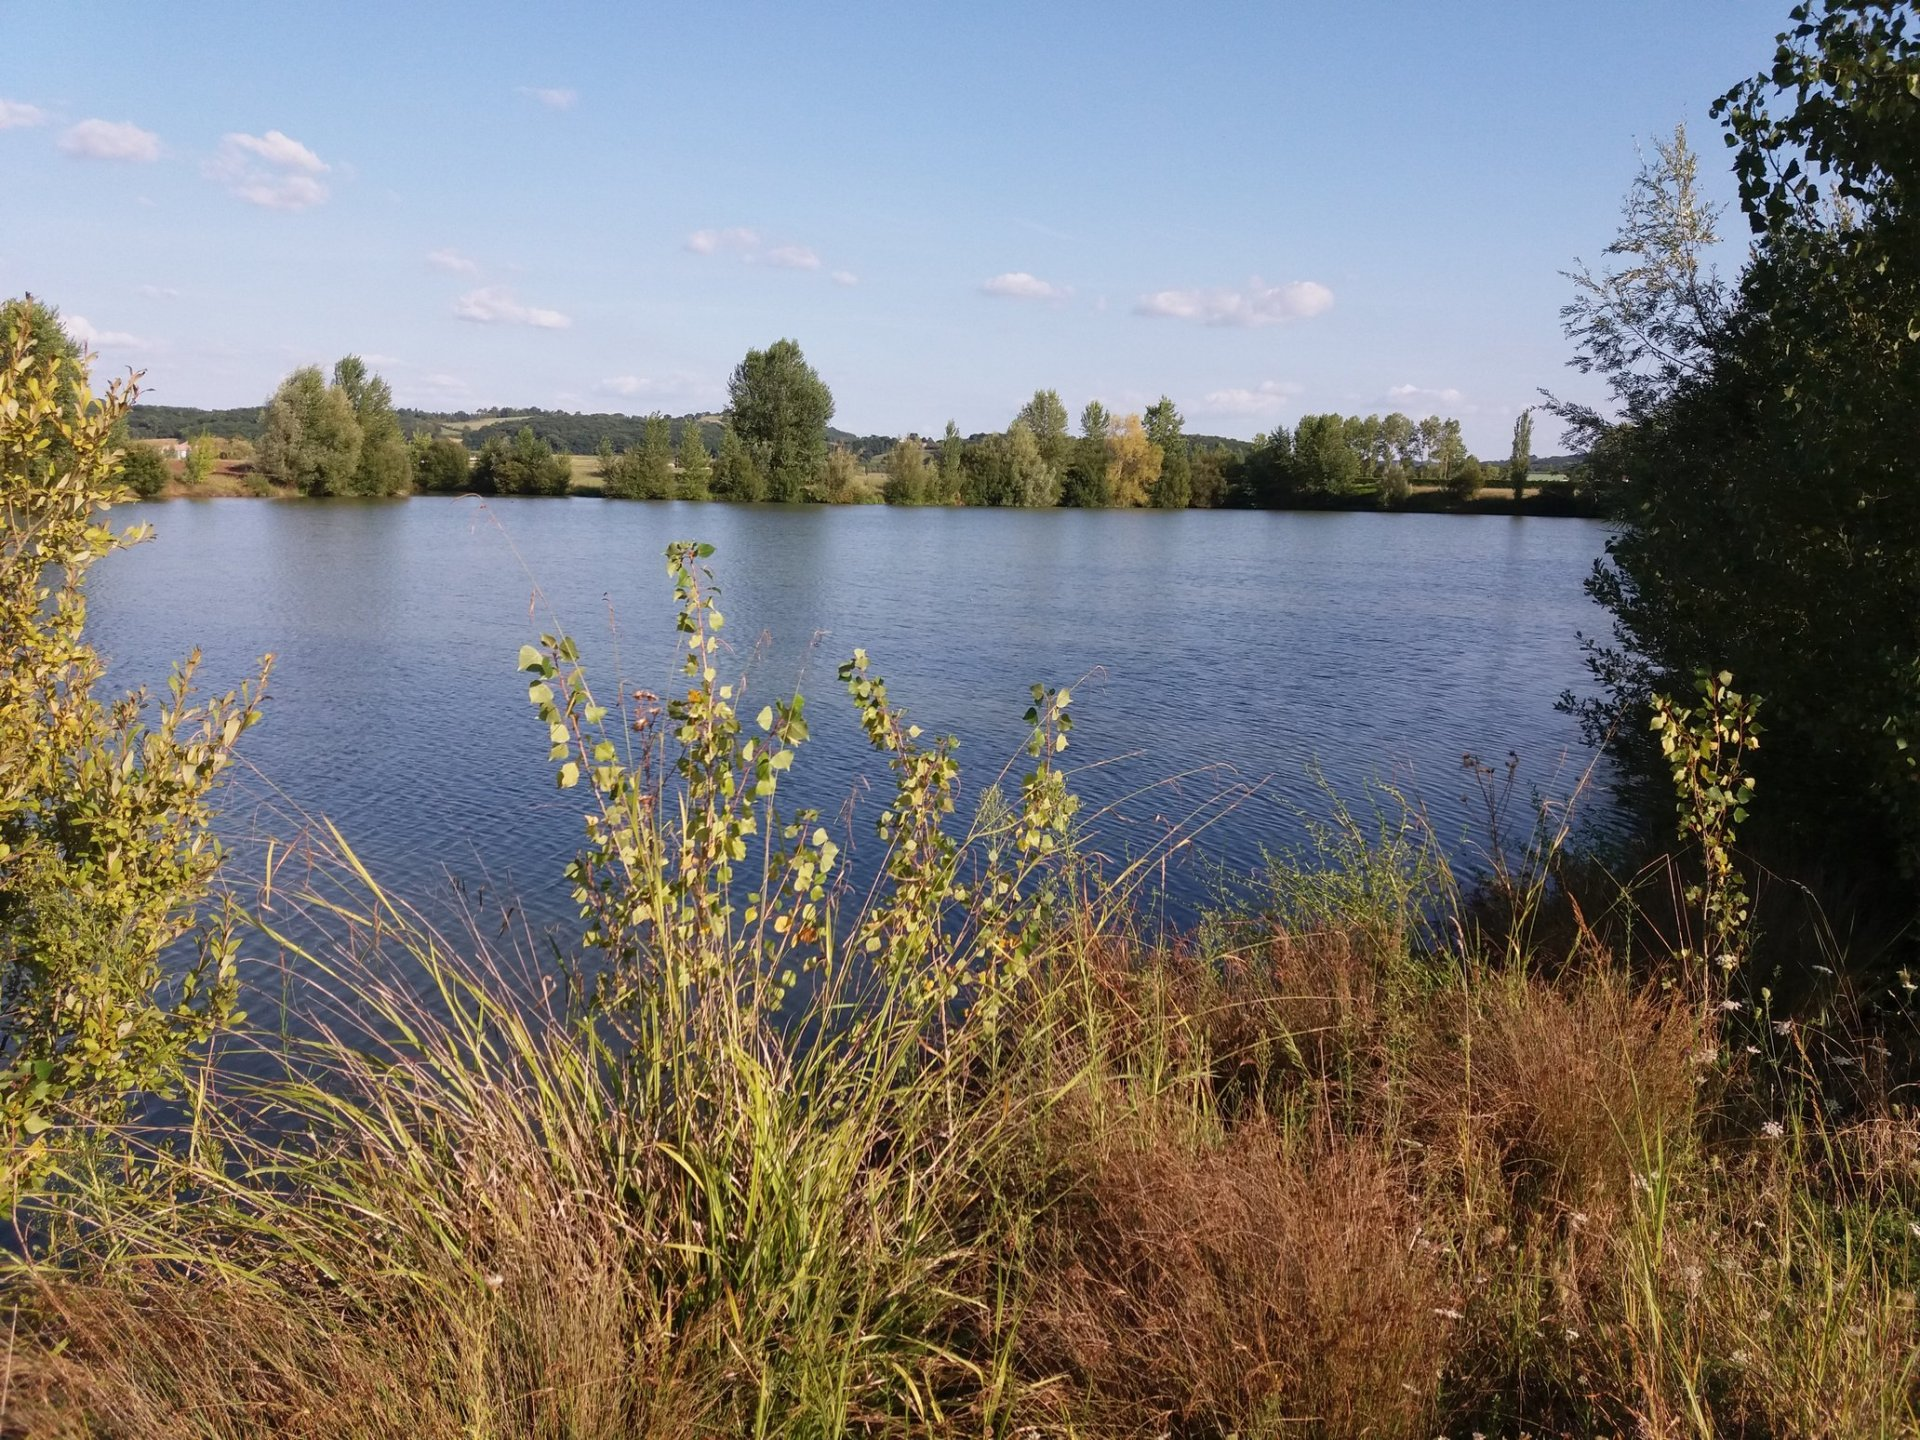 Nice clean lake of 7 hectares with carp surrounded by 8 hectares good land